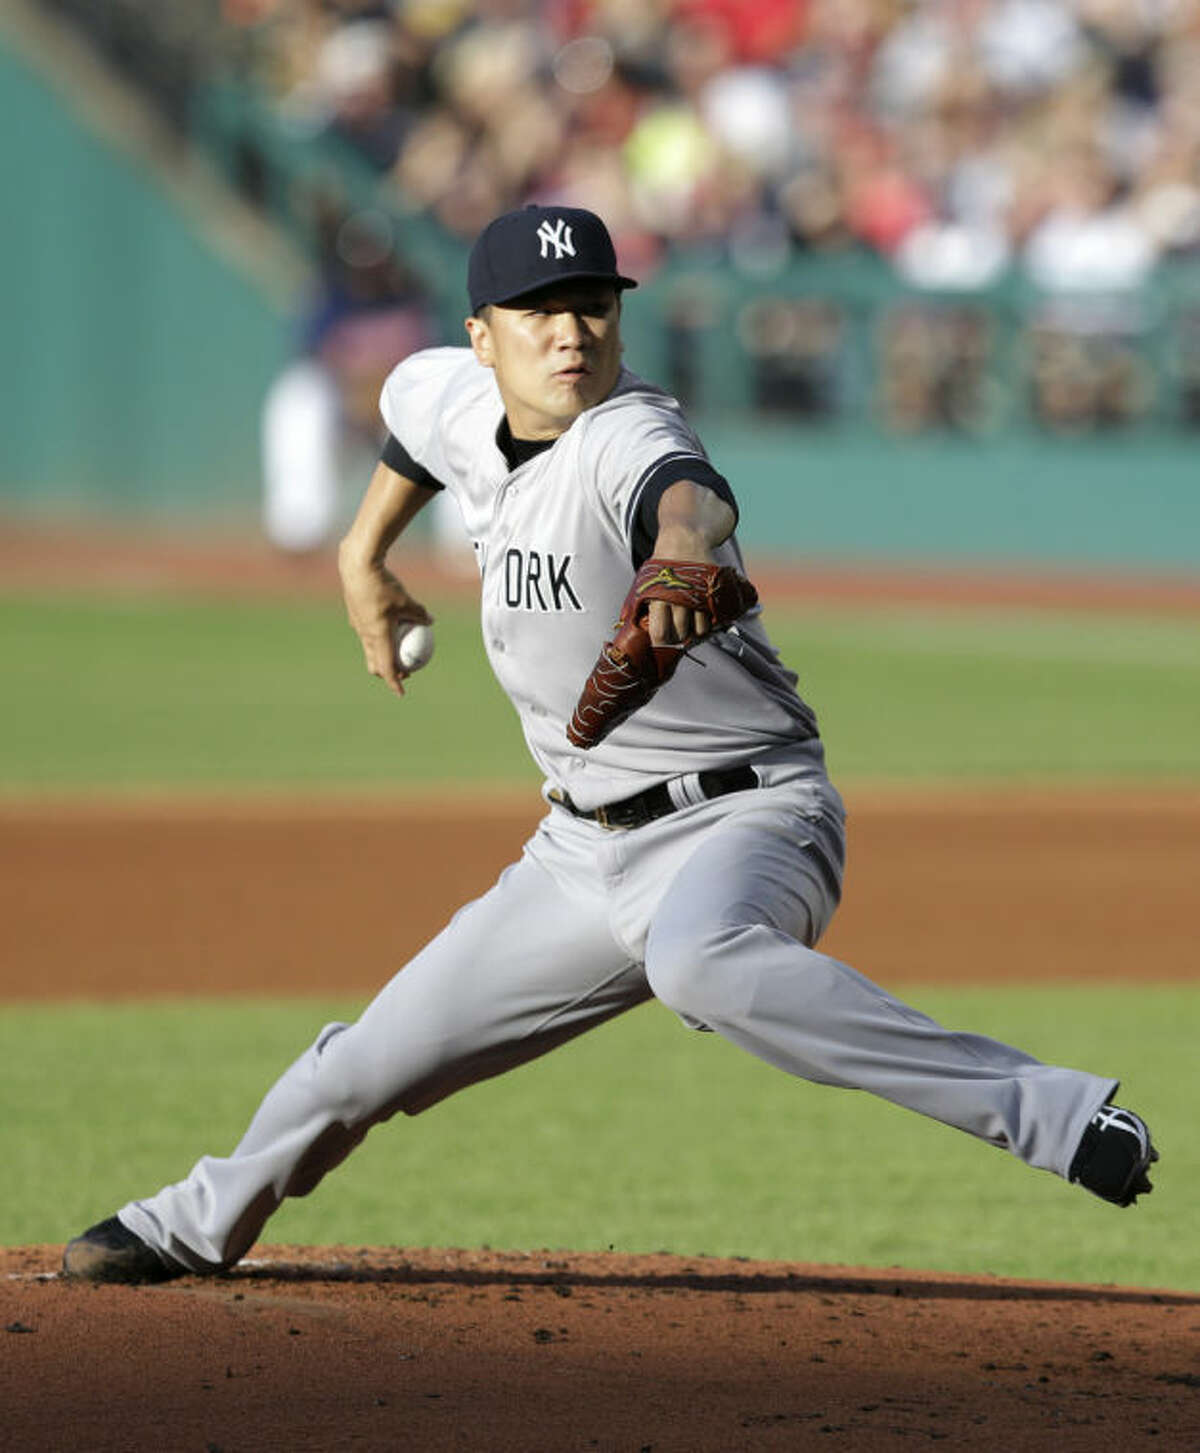 New York Yankees starting pitcher Masahiro Tanaka delivers in the first inning of a baseball game against the Cleveland Indians, Tuesday, July 8, 2014, in Cleveland. (AP Photo/Tony Dejak)